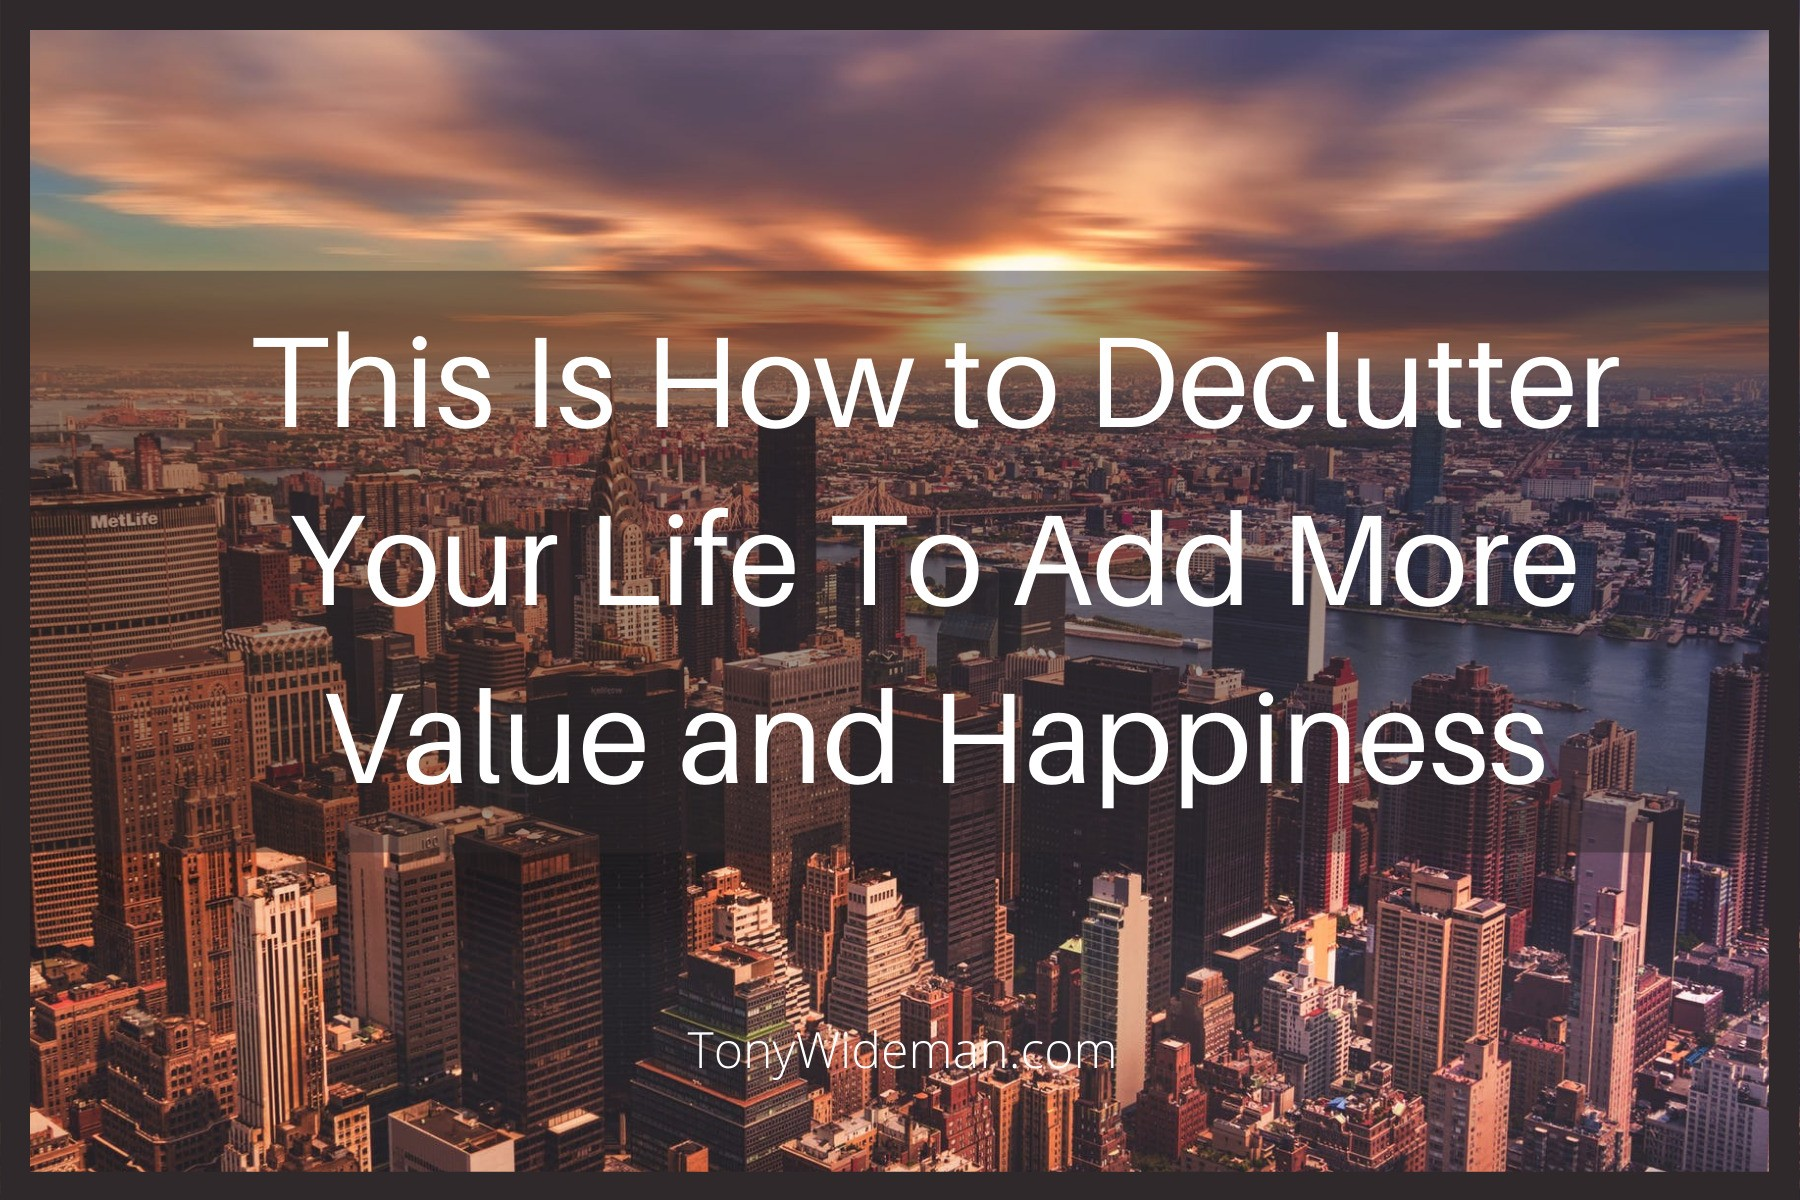 This Is How to Declutter Your Life To Add More Value and Happiness